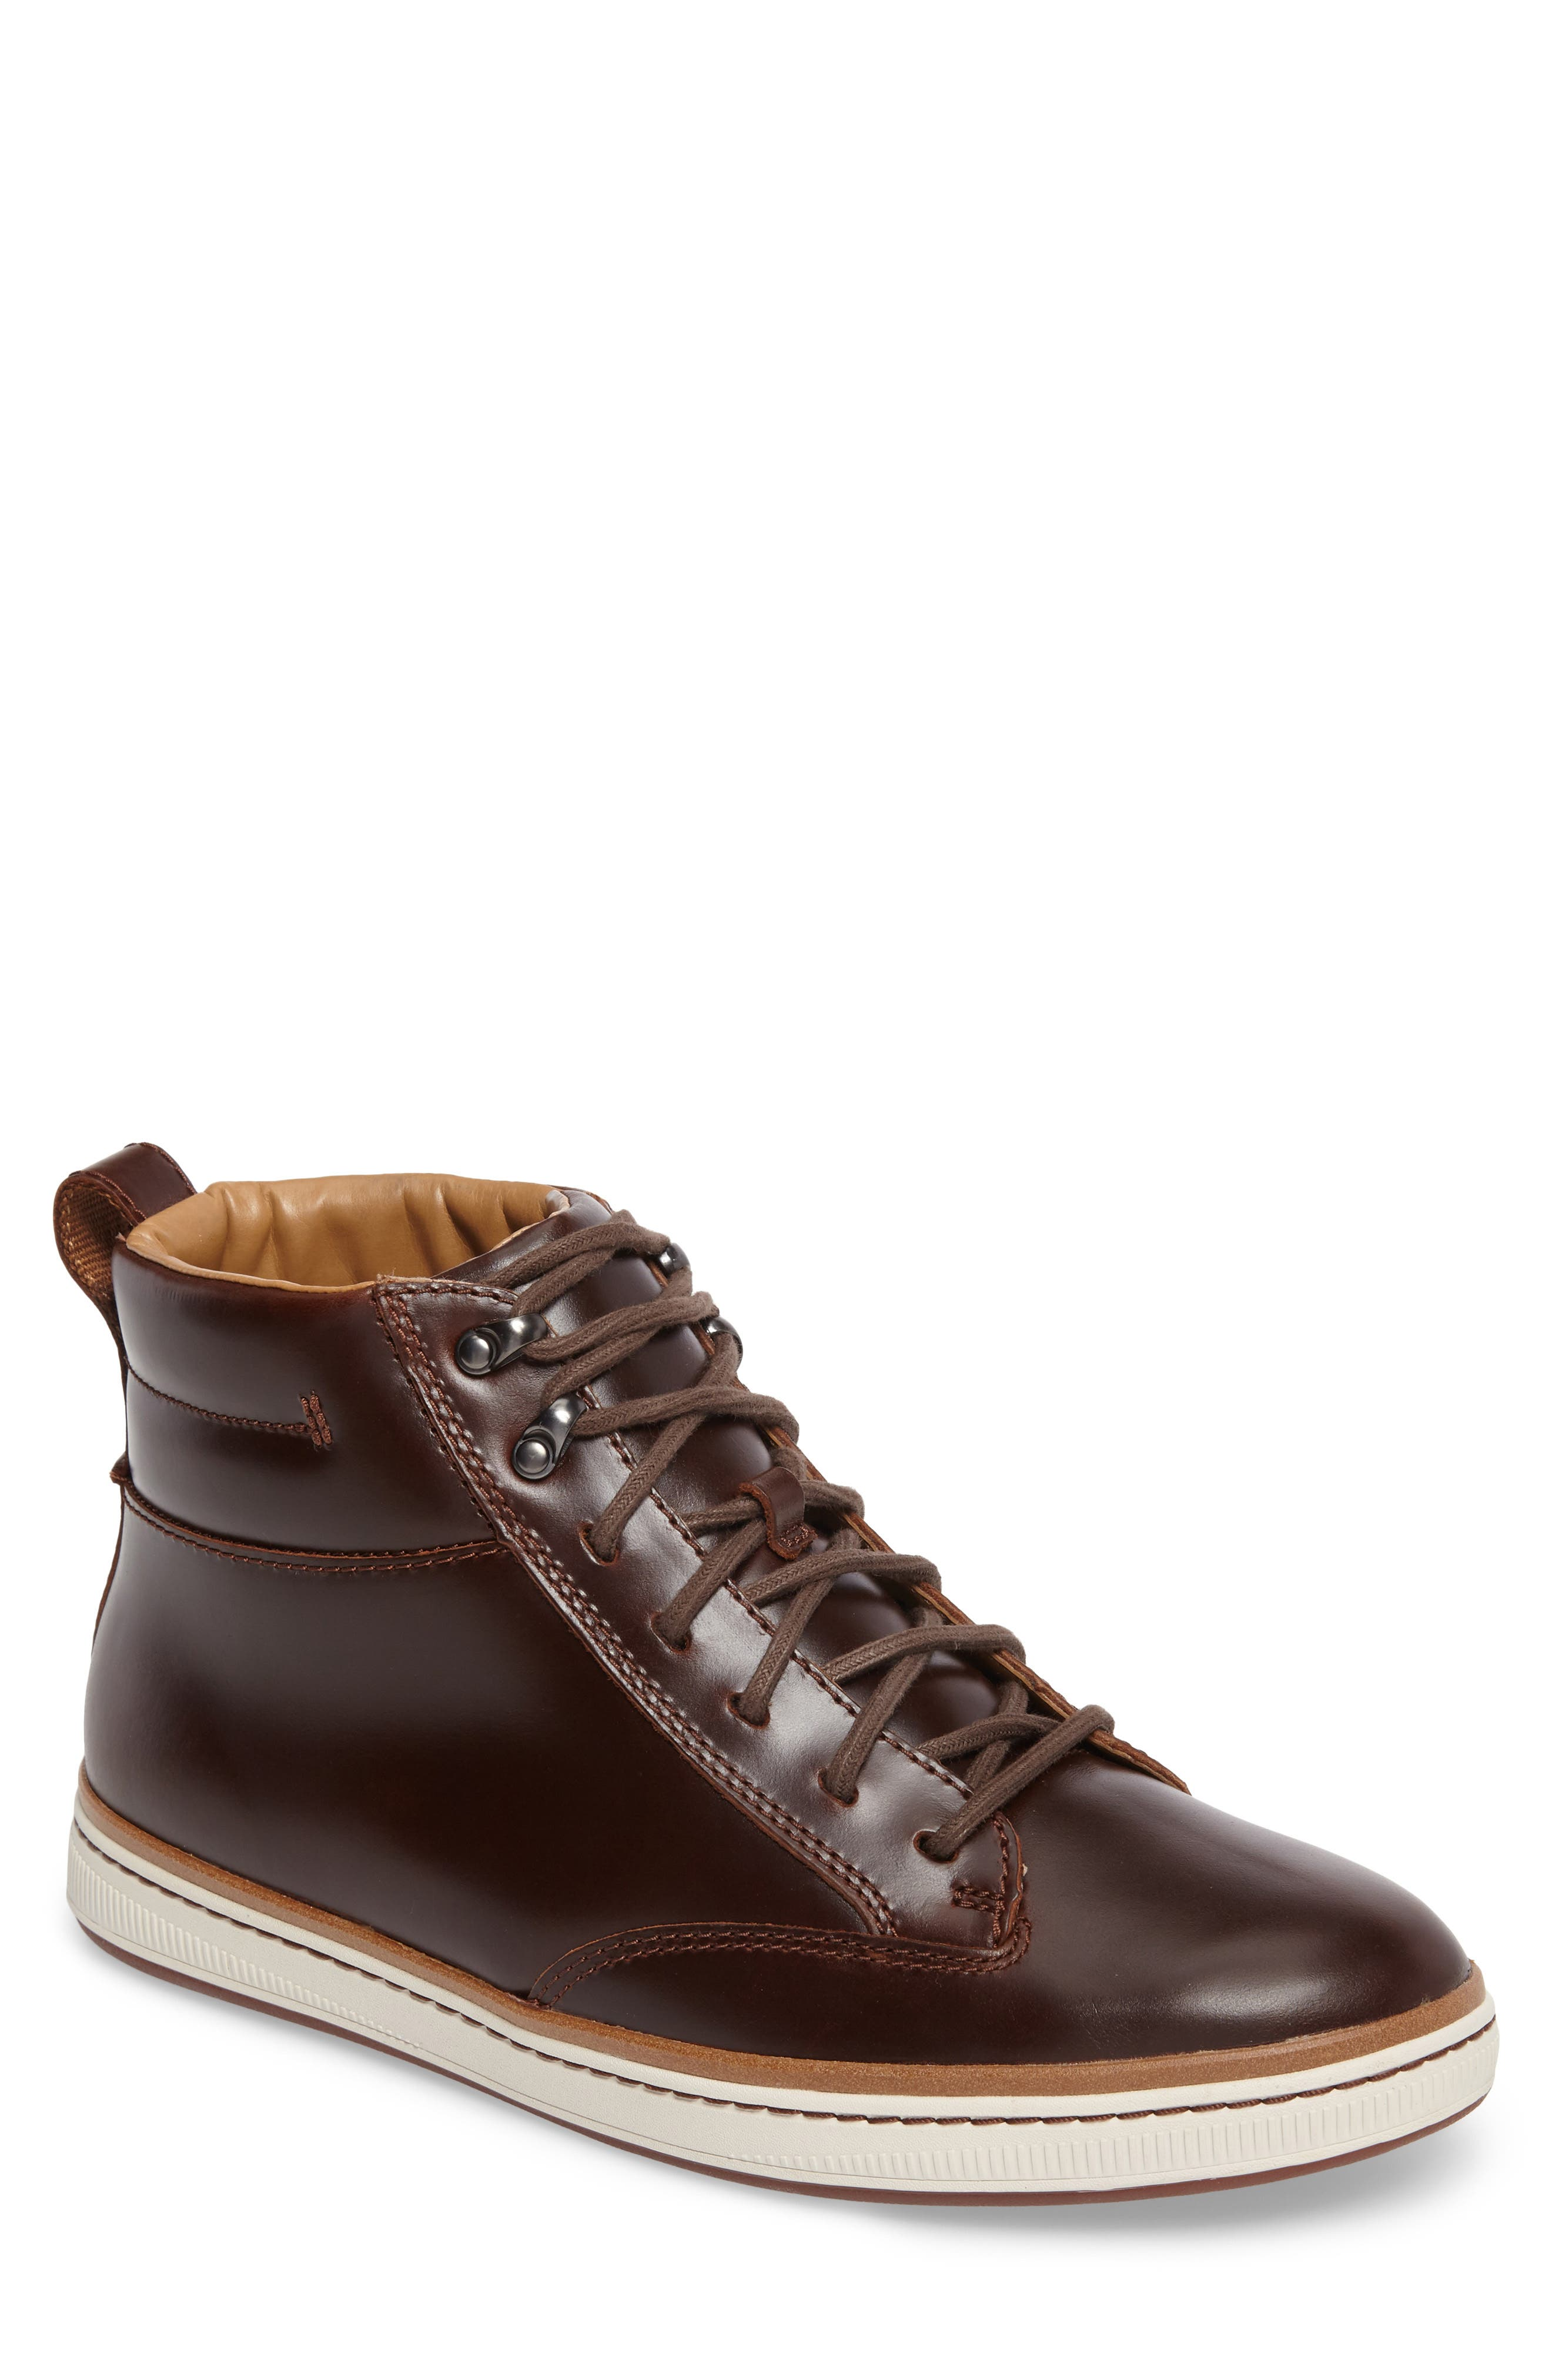 Alternate Image 1 Selected - Clarks® Norsen Mid Water Resistant Plain Toe Boot with Faux-Fur Lining (Men)